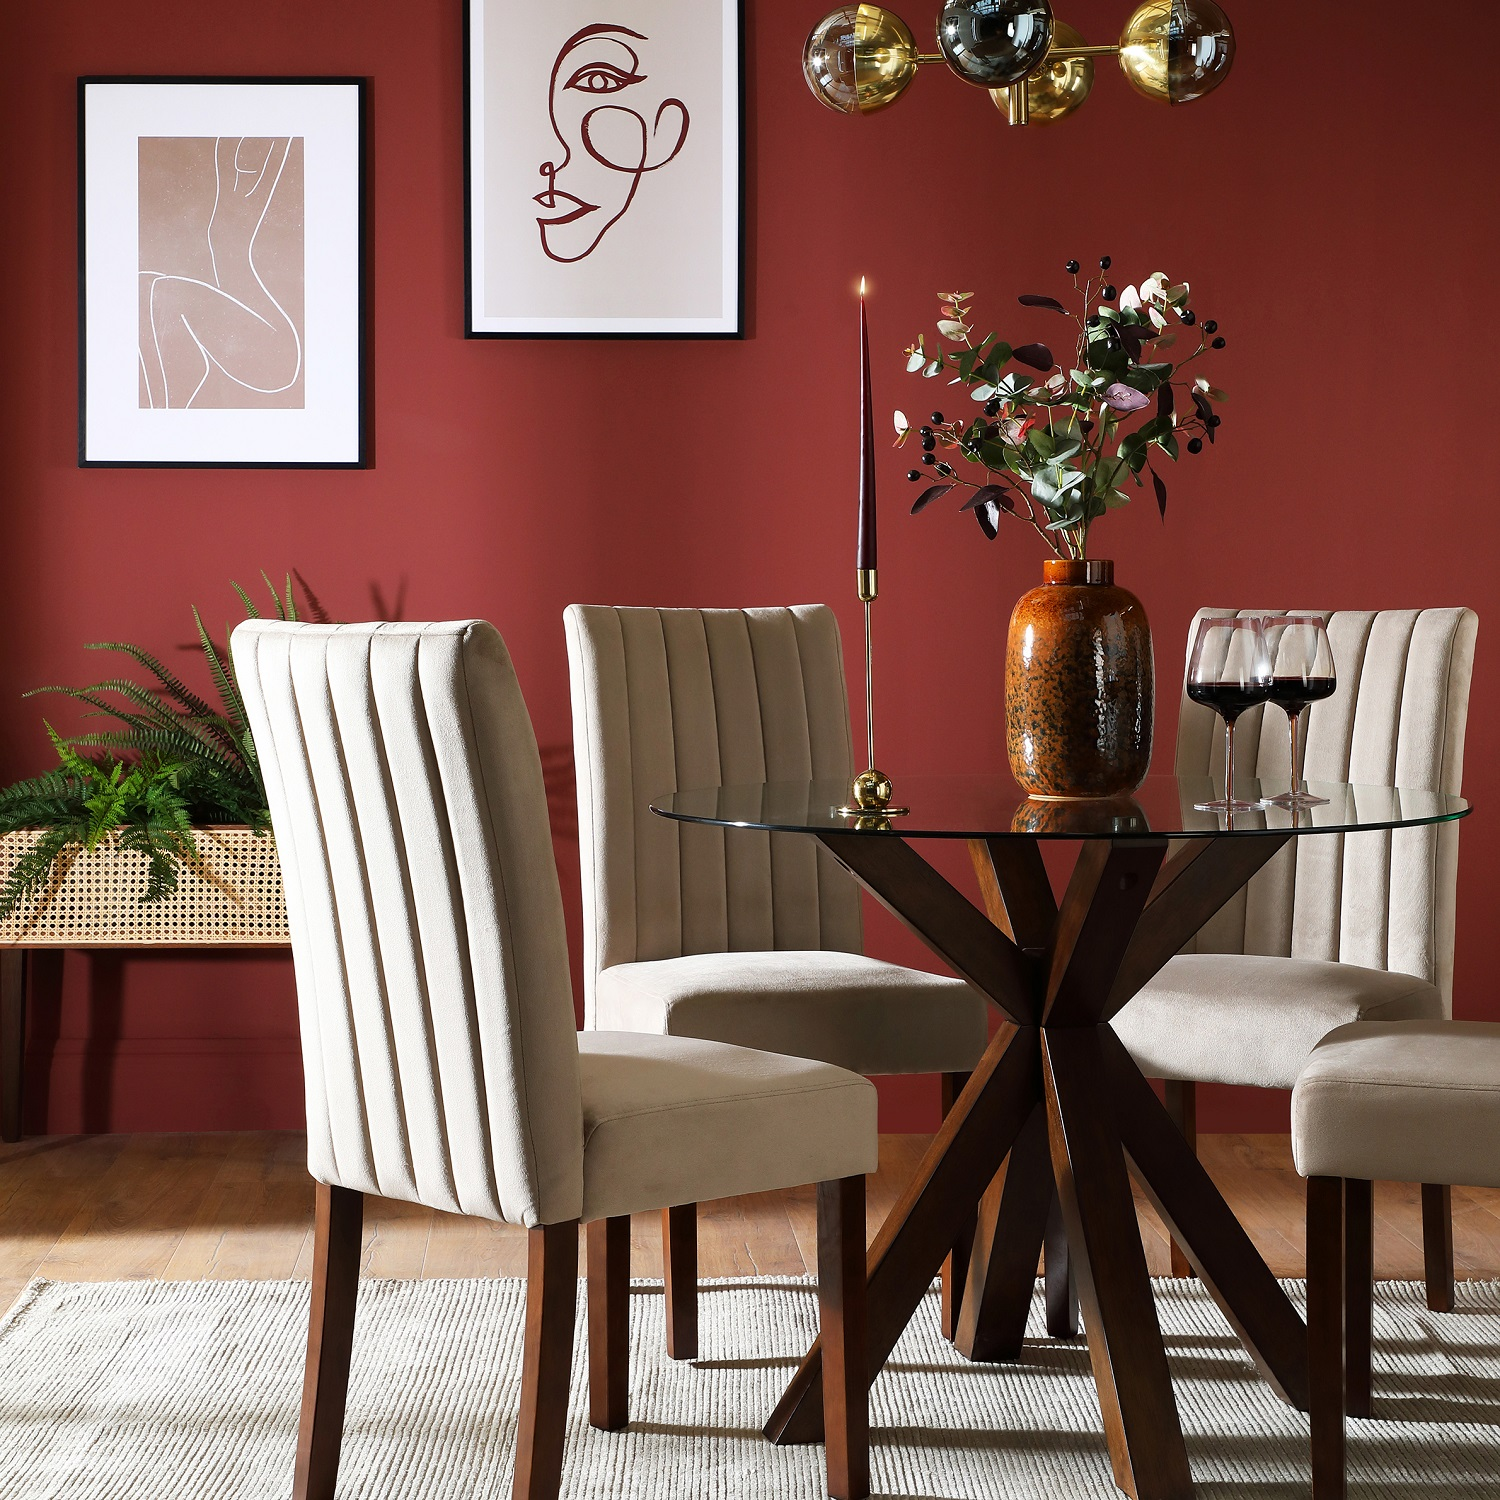 Lady Bug is a rich earthy red, used by Furniture and Choice in this dining space